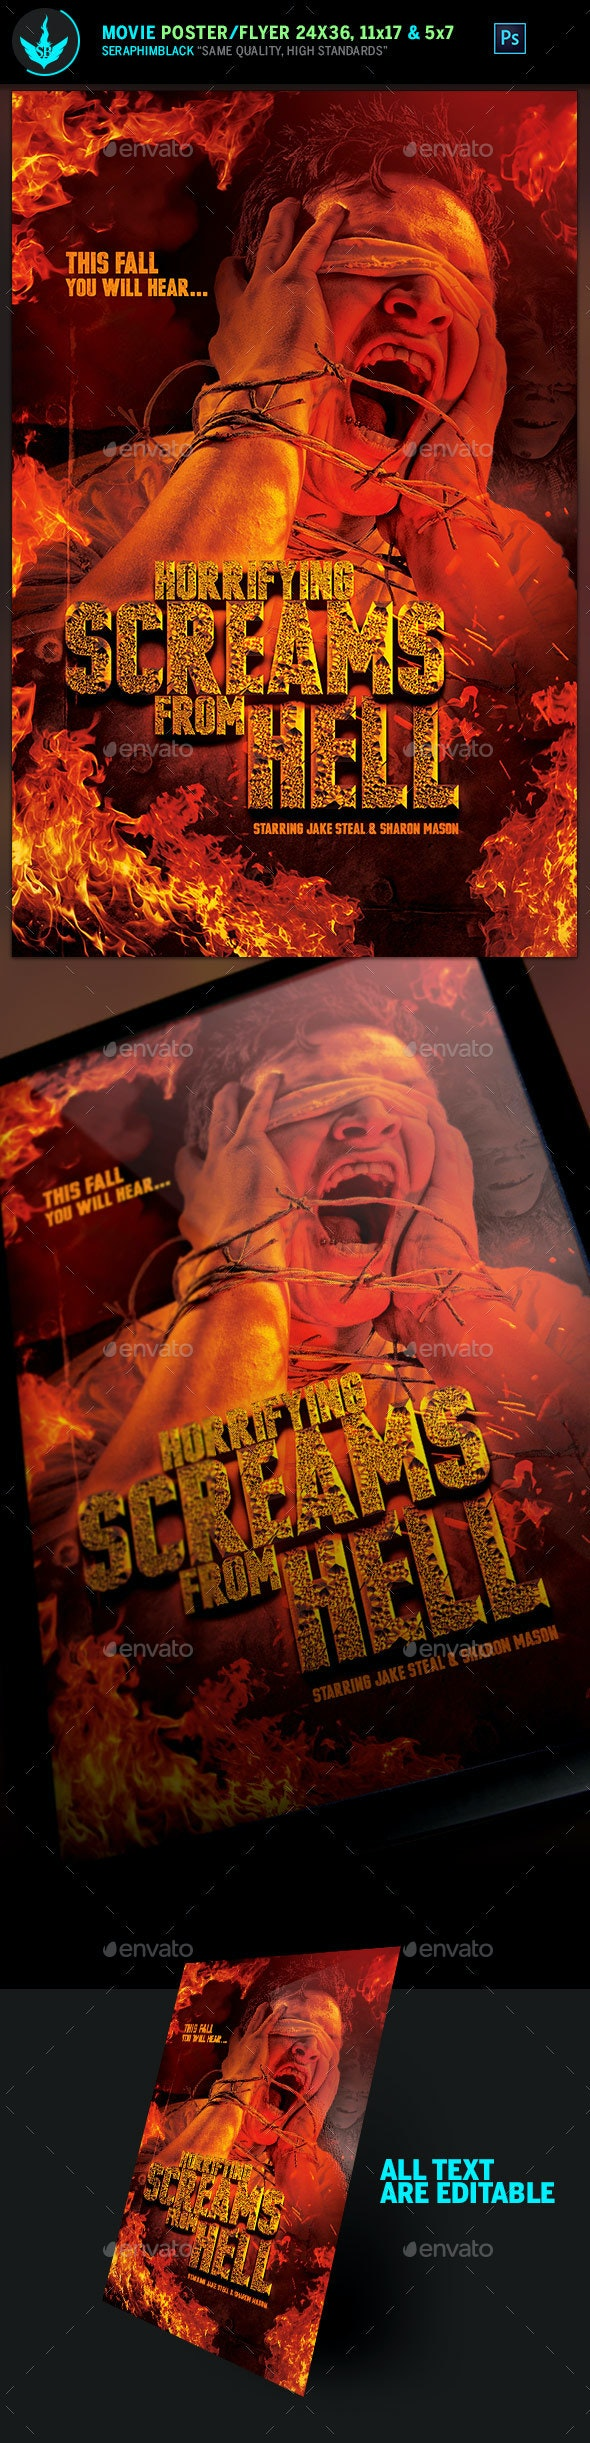 Screams from Hell Movie Poster plus Flyer Template - Church Flyers